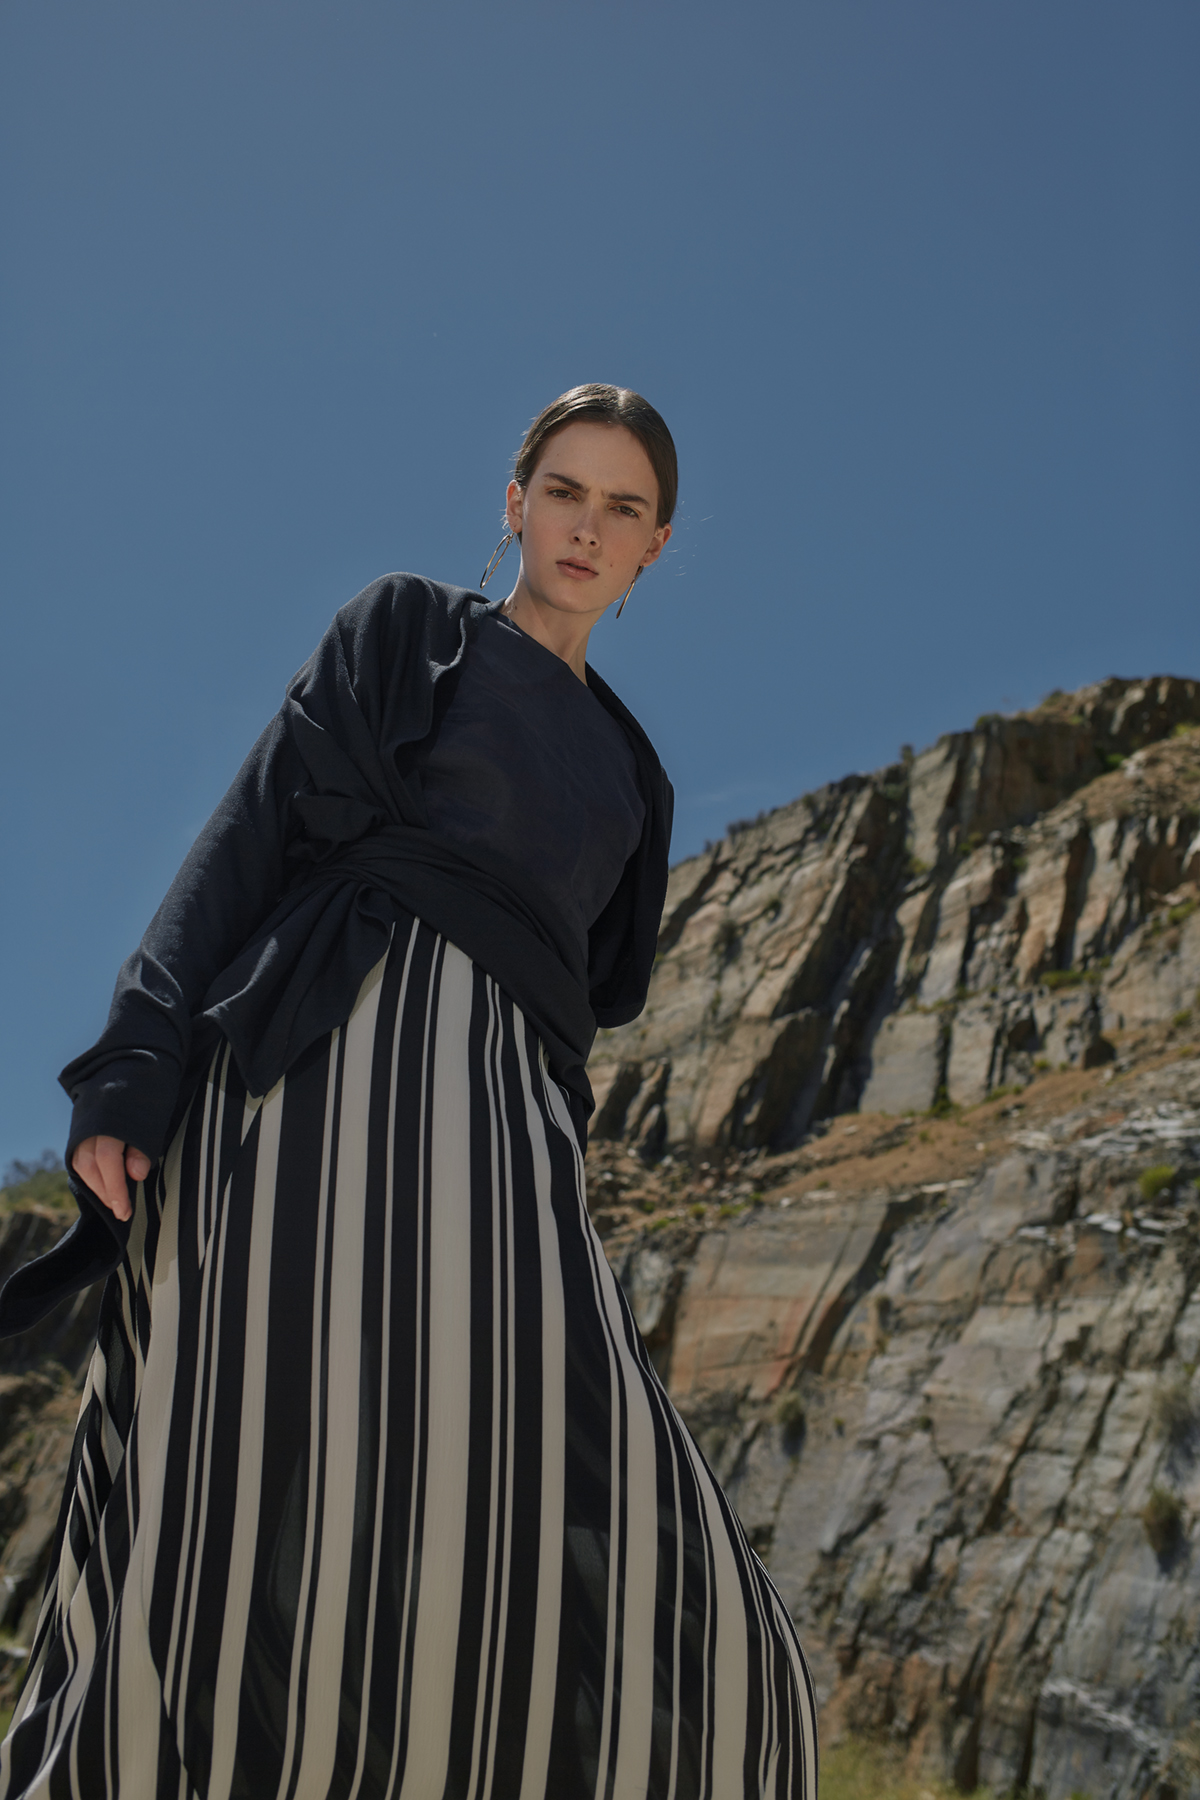 Navy linen tee,Amanda Laird Cherry; black wrap jersey, Colleen Eitzen; black-and-white stripe skirt, The Space; gold hoop earrings, stylist's own